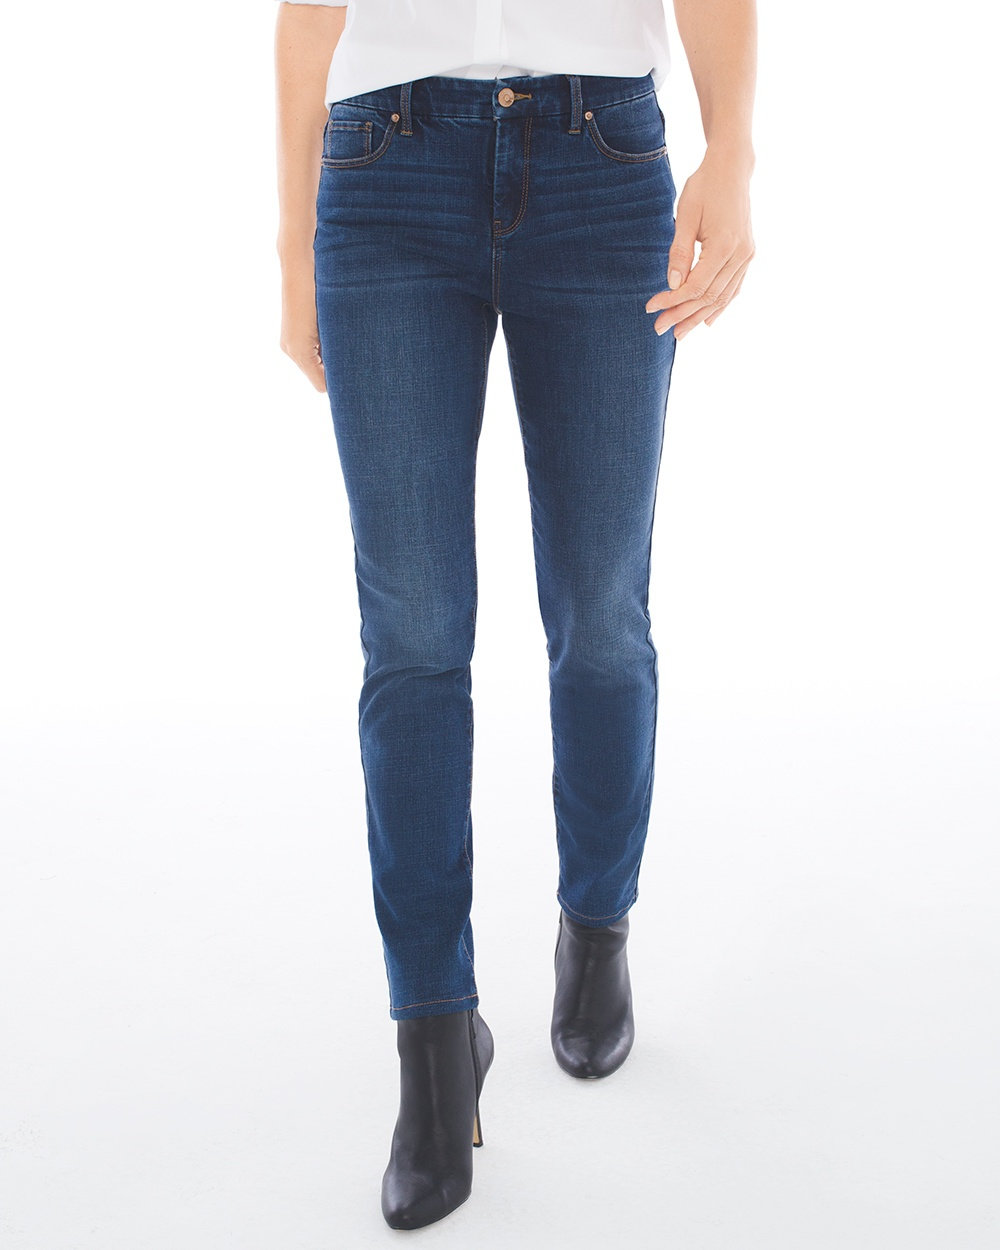 Chicos Girlfriend Ankle Jeans--love these!